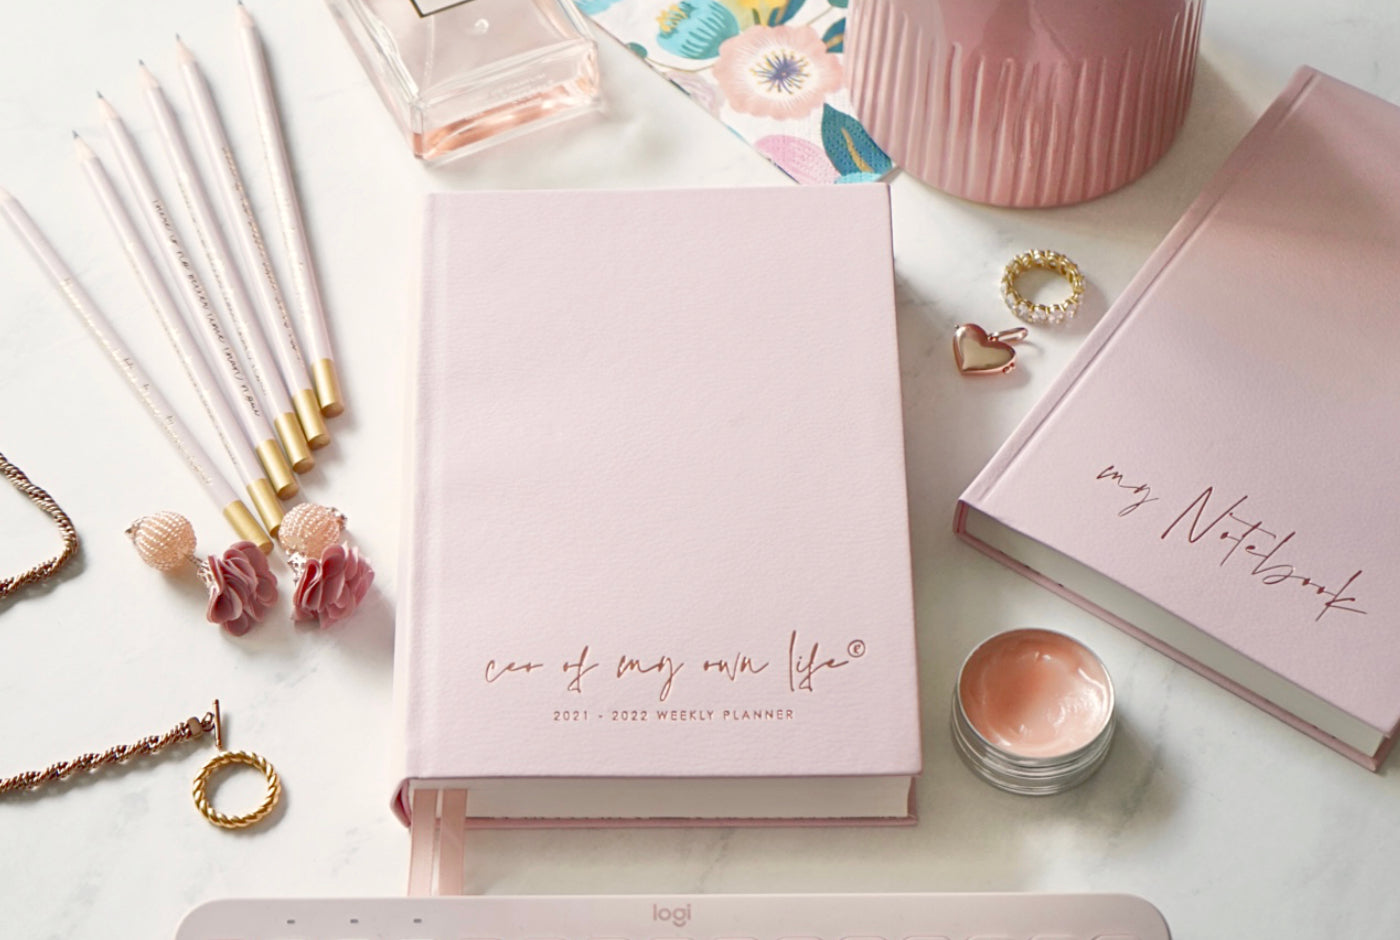 Ella Iconic Stationery | Mid Year 2021/22 CEO of My Own Life® Weekly Planners